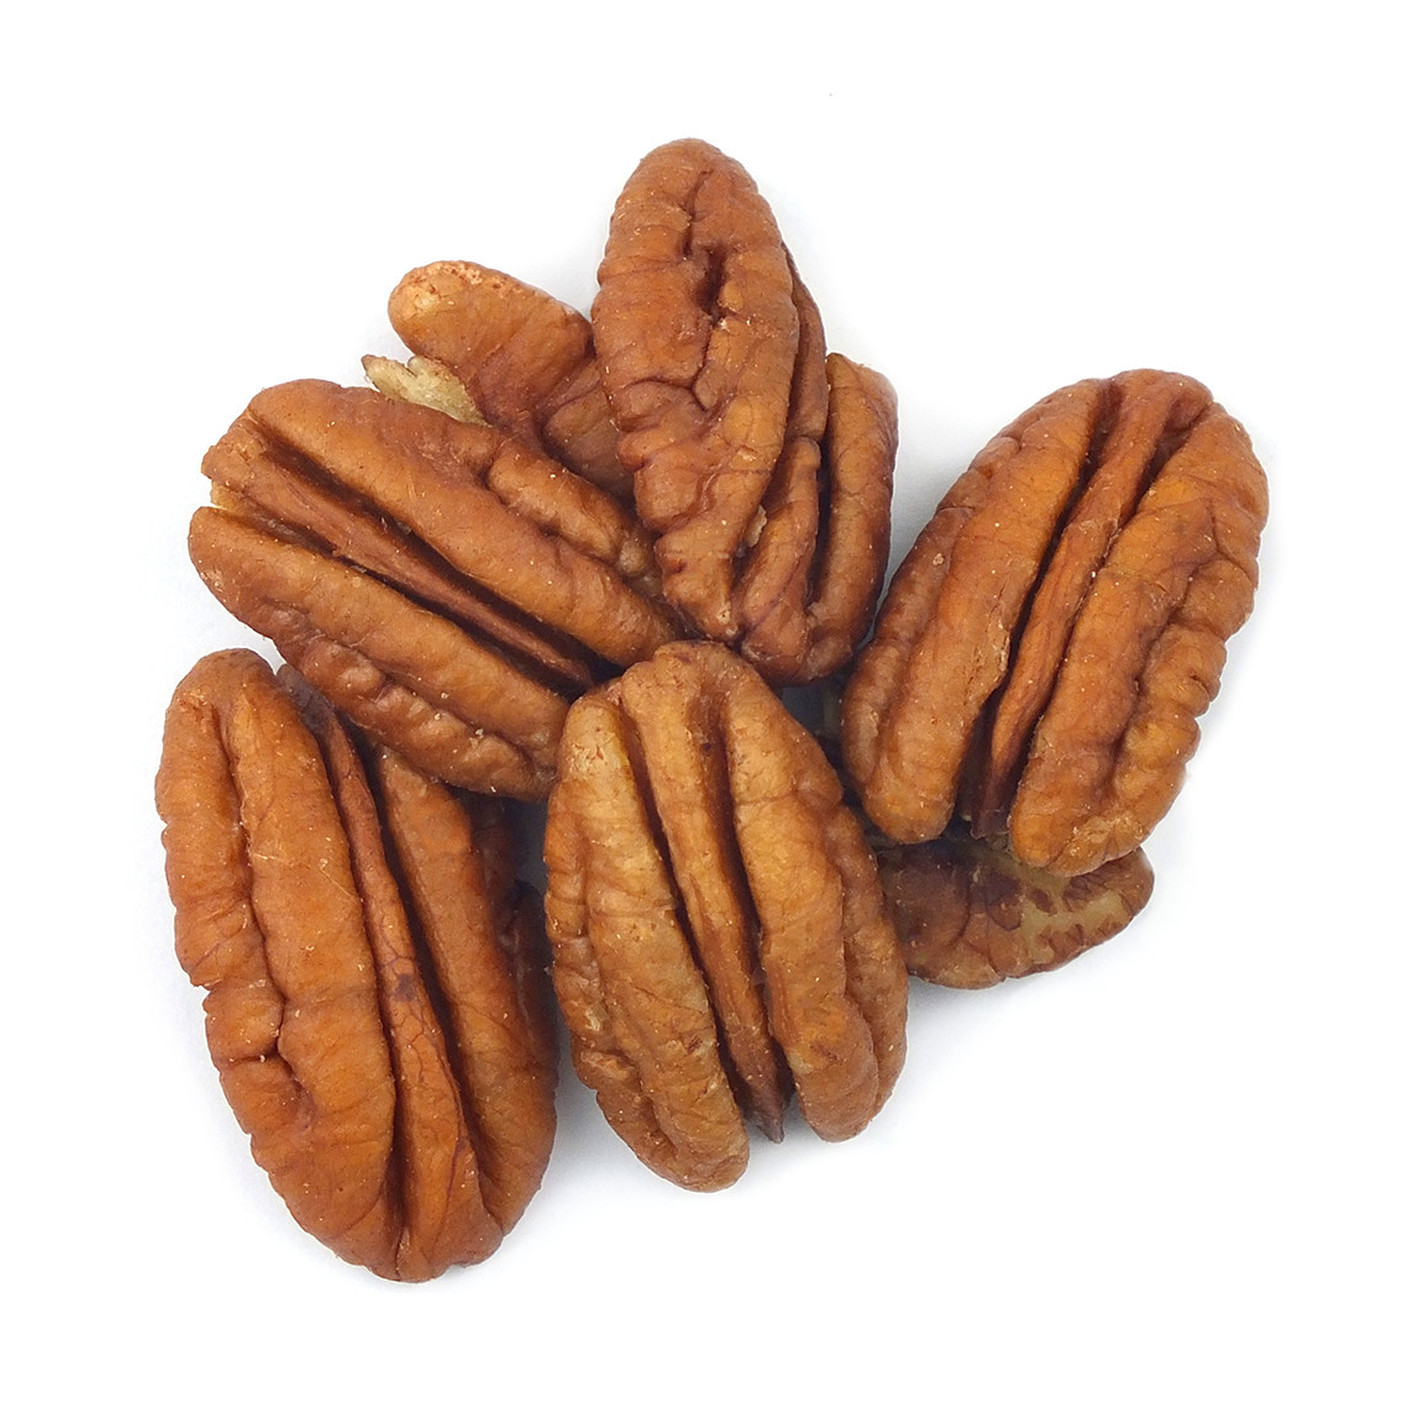 Pecan-nuts Health Benefits, Nutritional Value and Uses